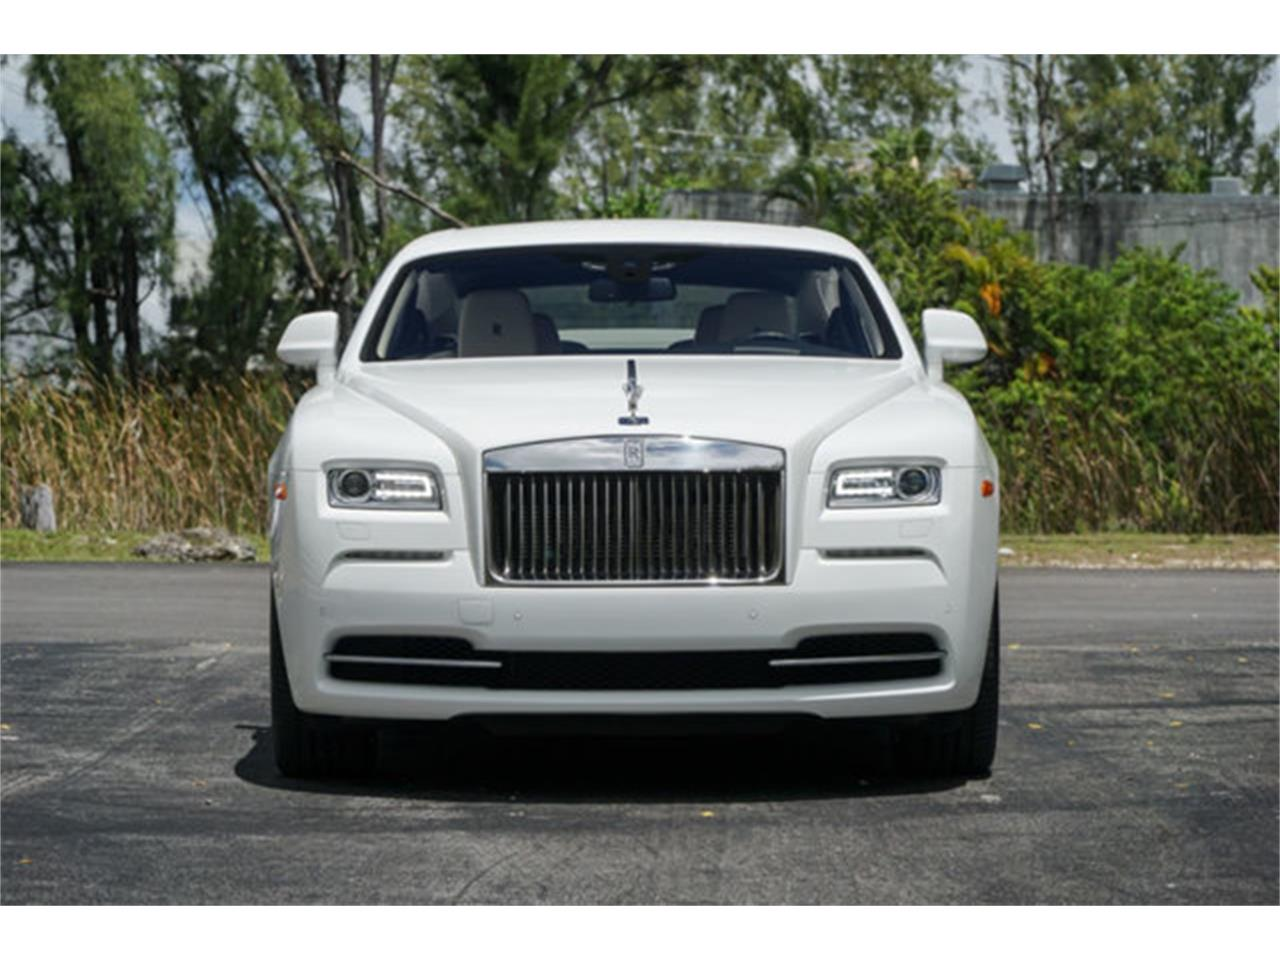 2016 Rolls-Royce Silver Wraith (CC-1216502) for sale in Miami, Florida